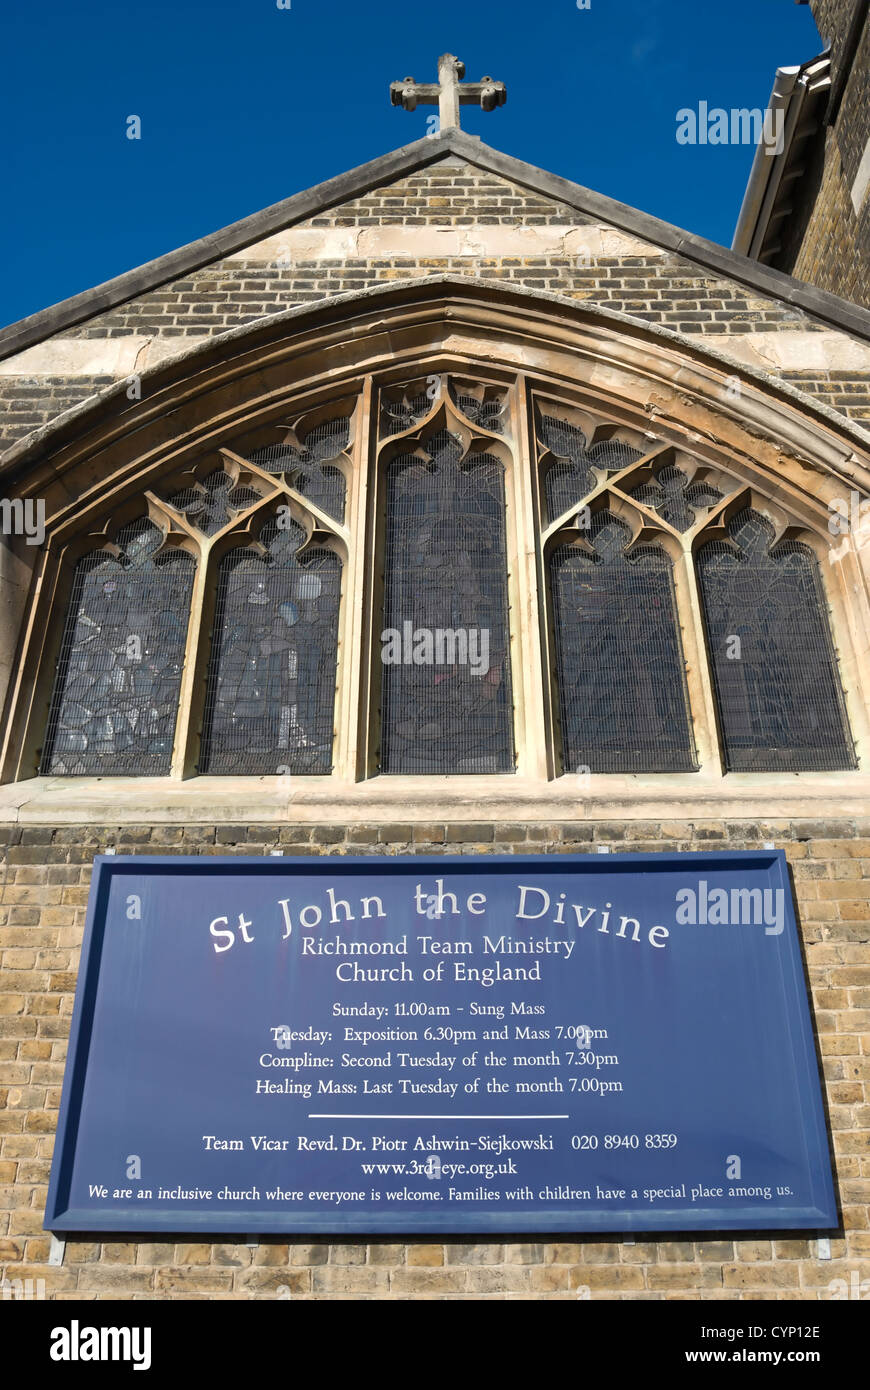 noticeboard with service times and church details at the church of st john the divine, richmond upon thames, surrey, - Stock Image